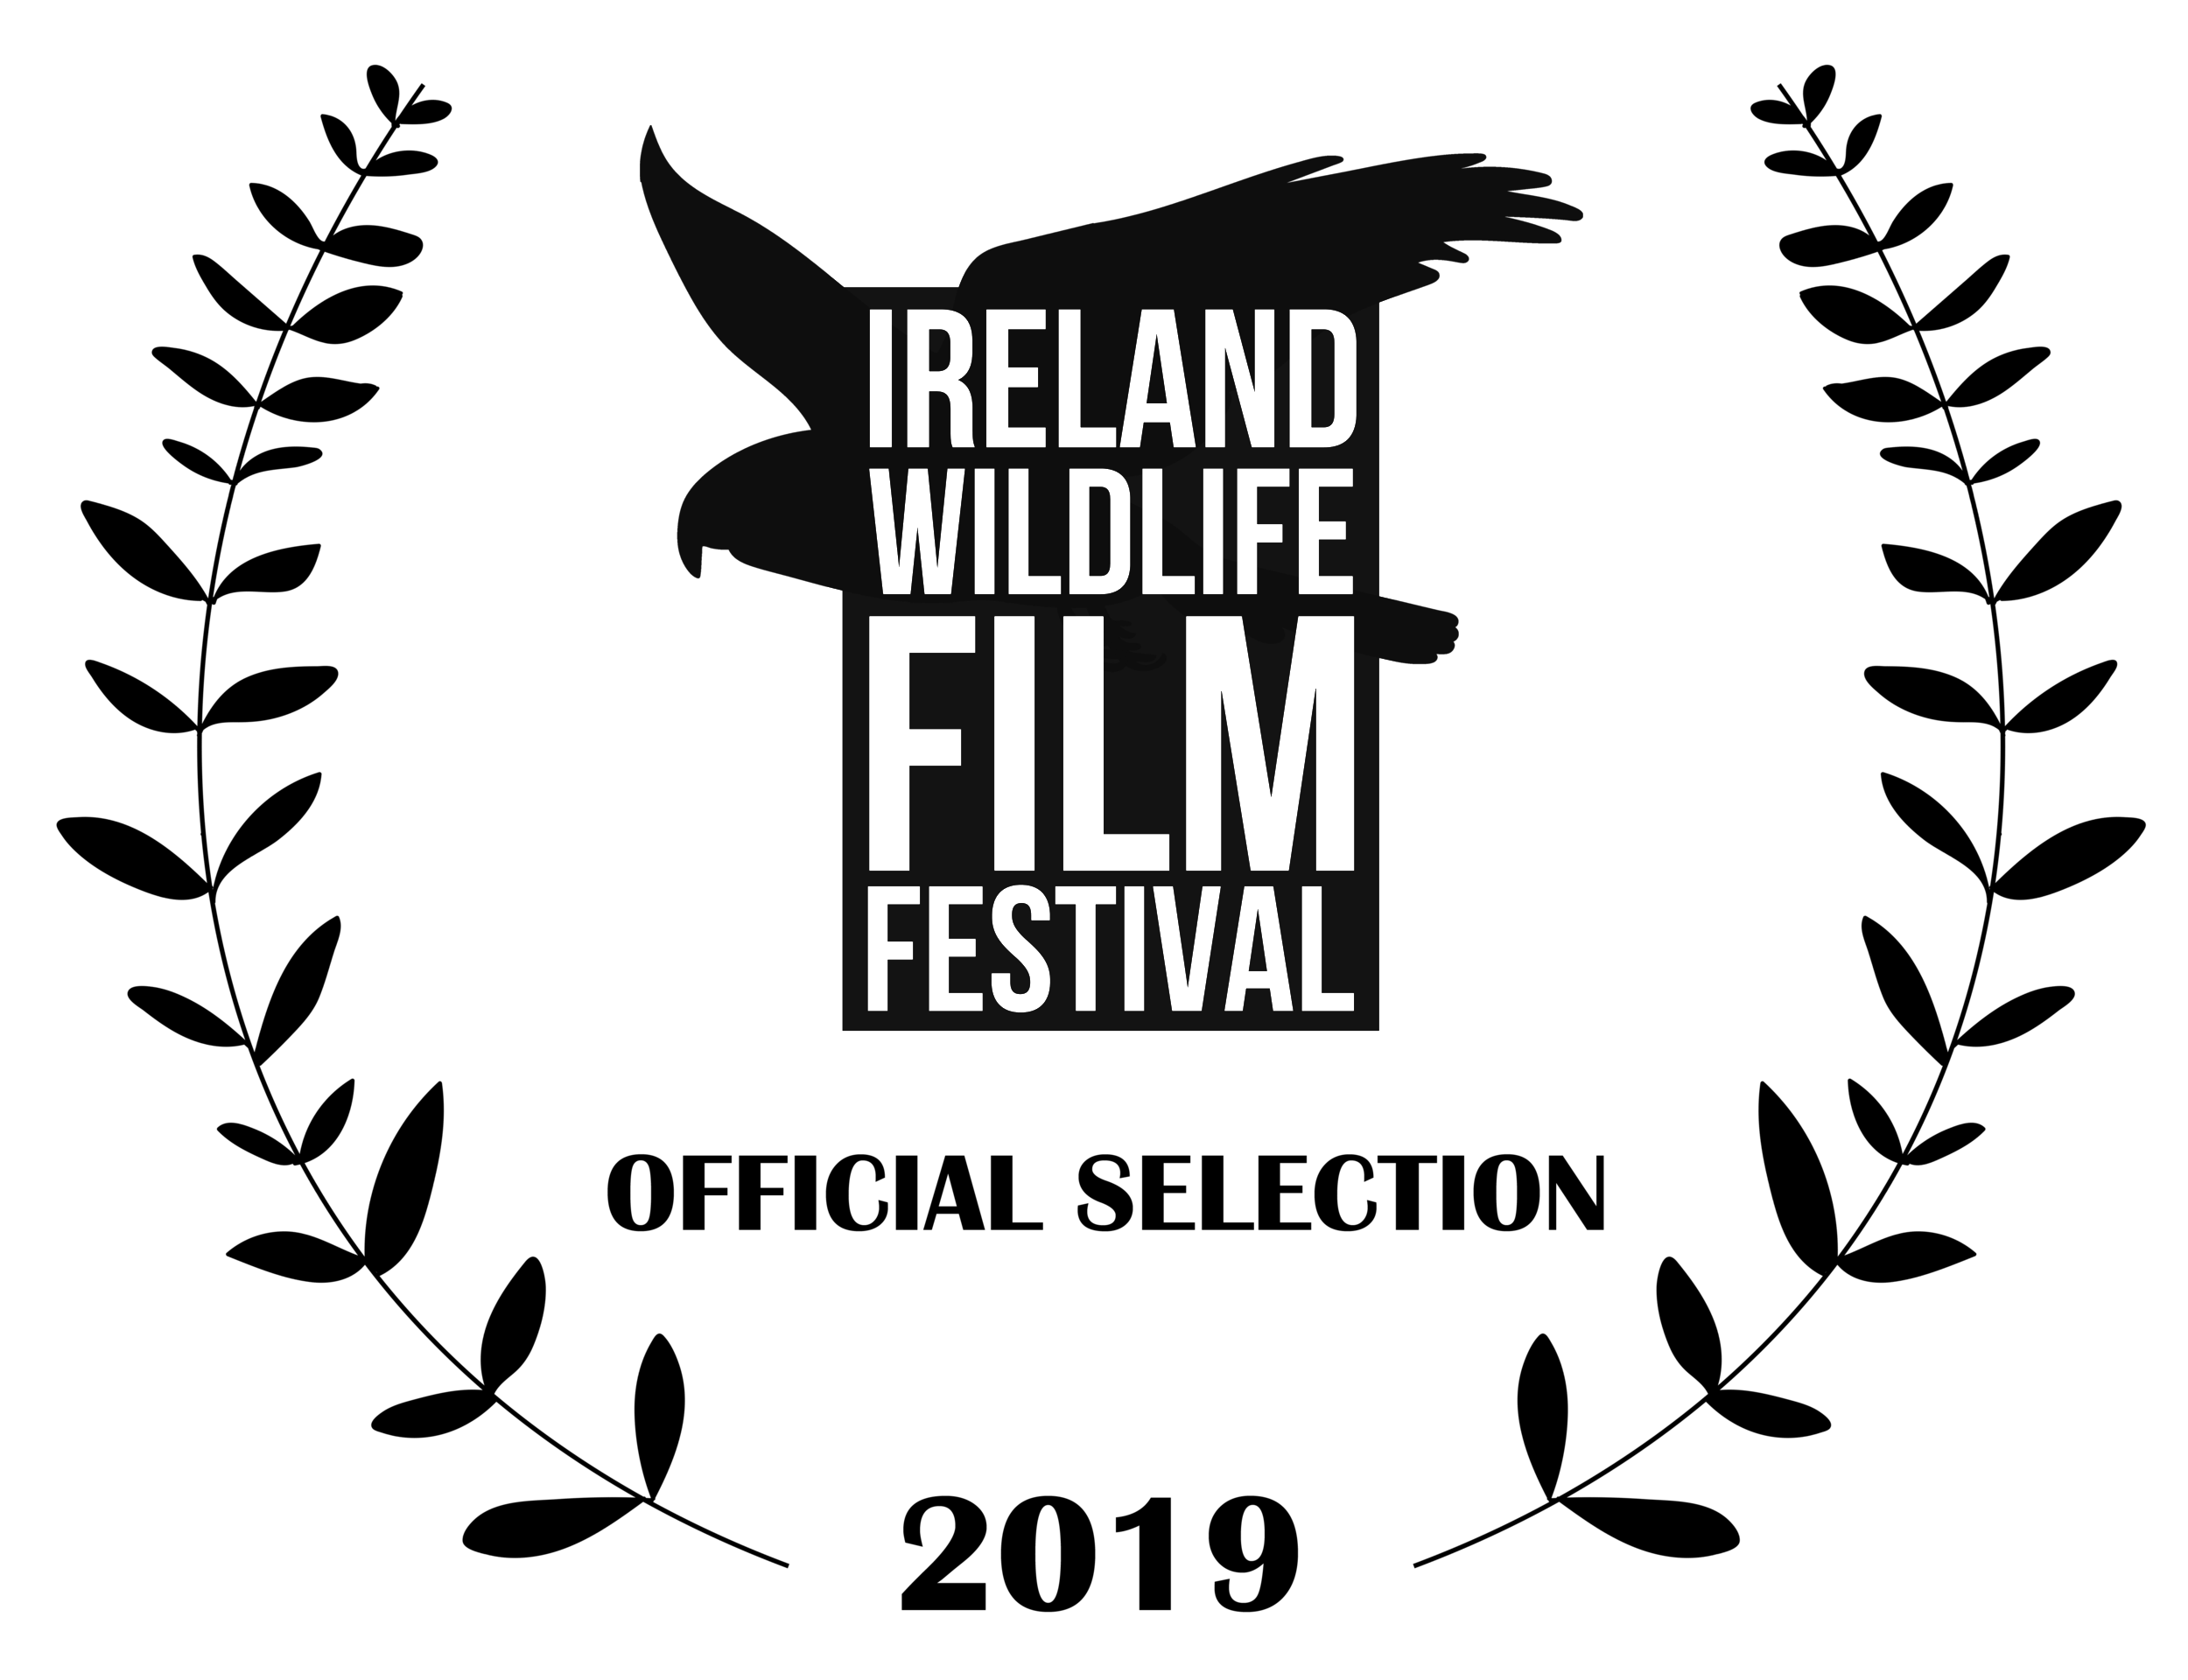 Ireland Wildlife Film Festival Black Laurel.png